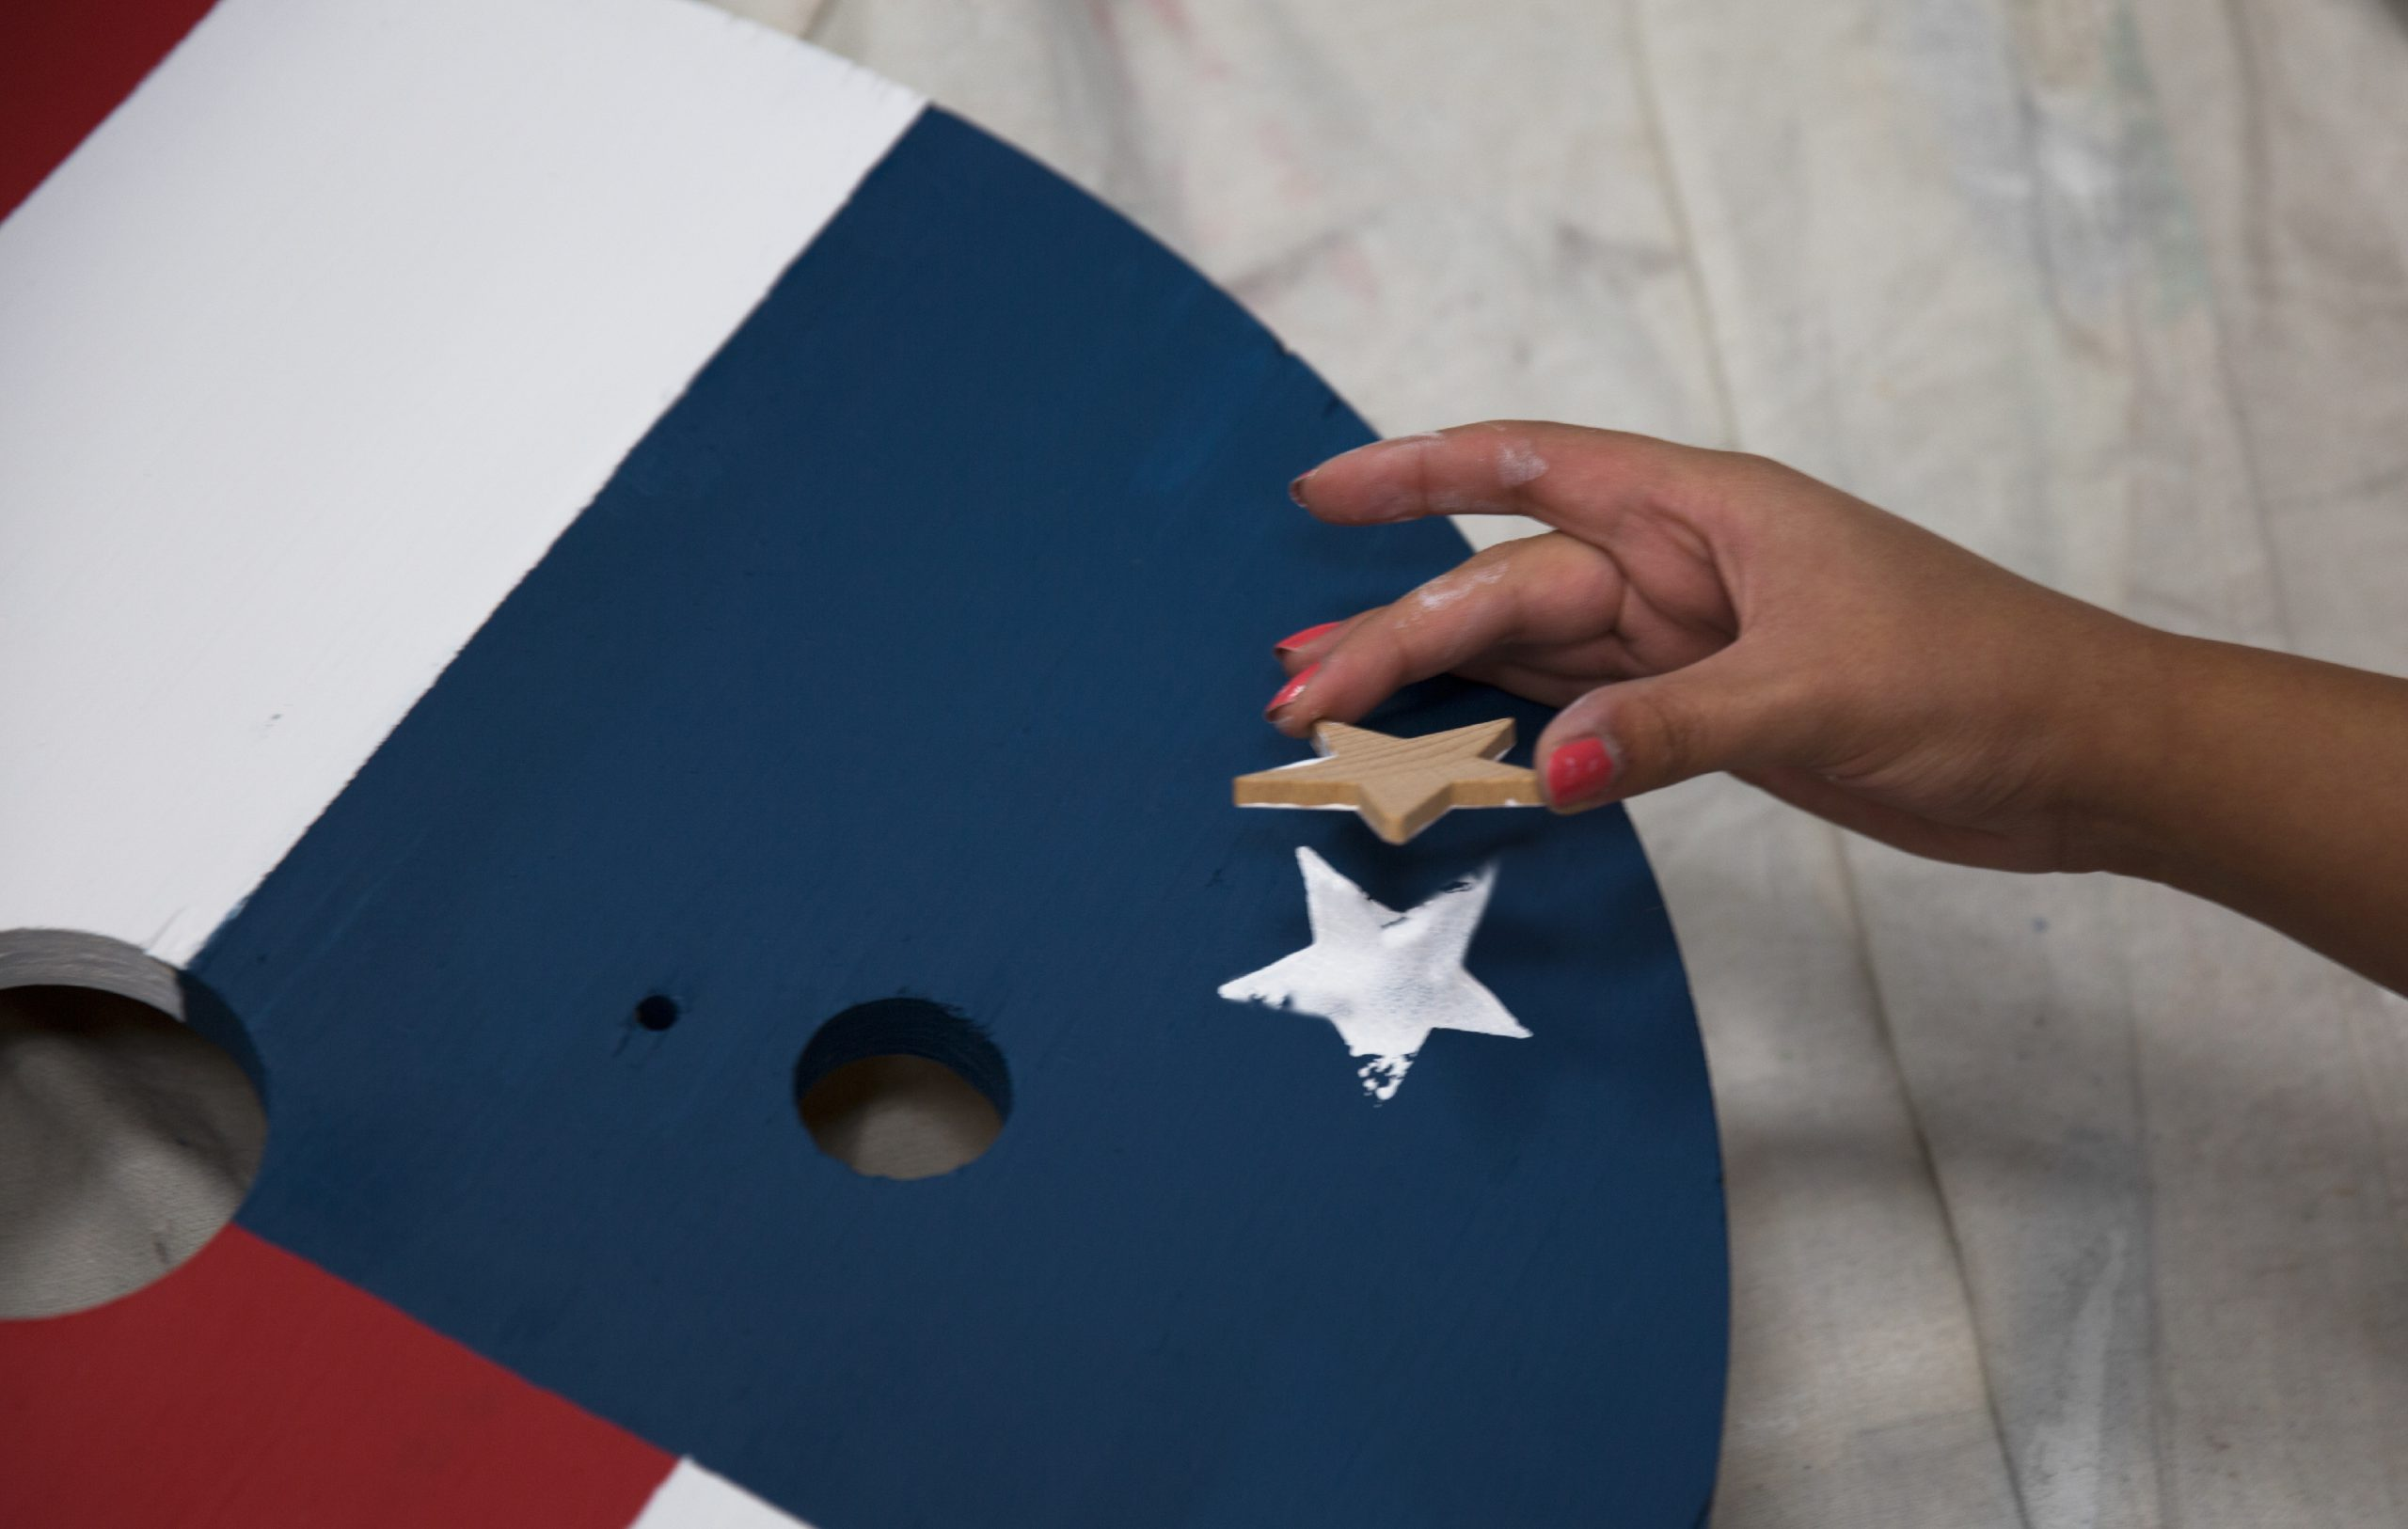 Showing the painted star left behind from the stamp stencil on to the flag design.